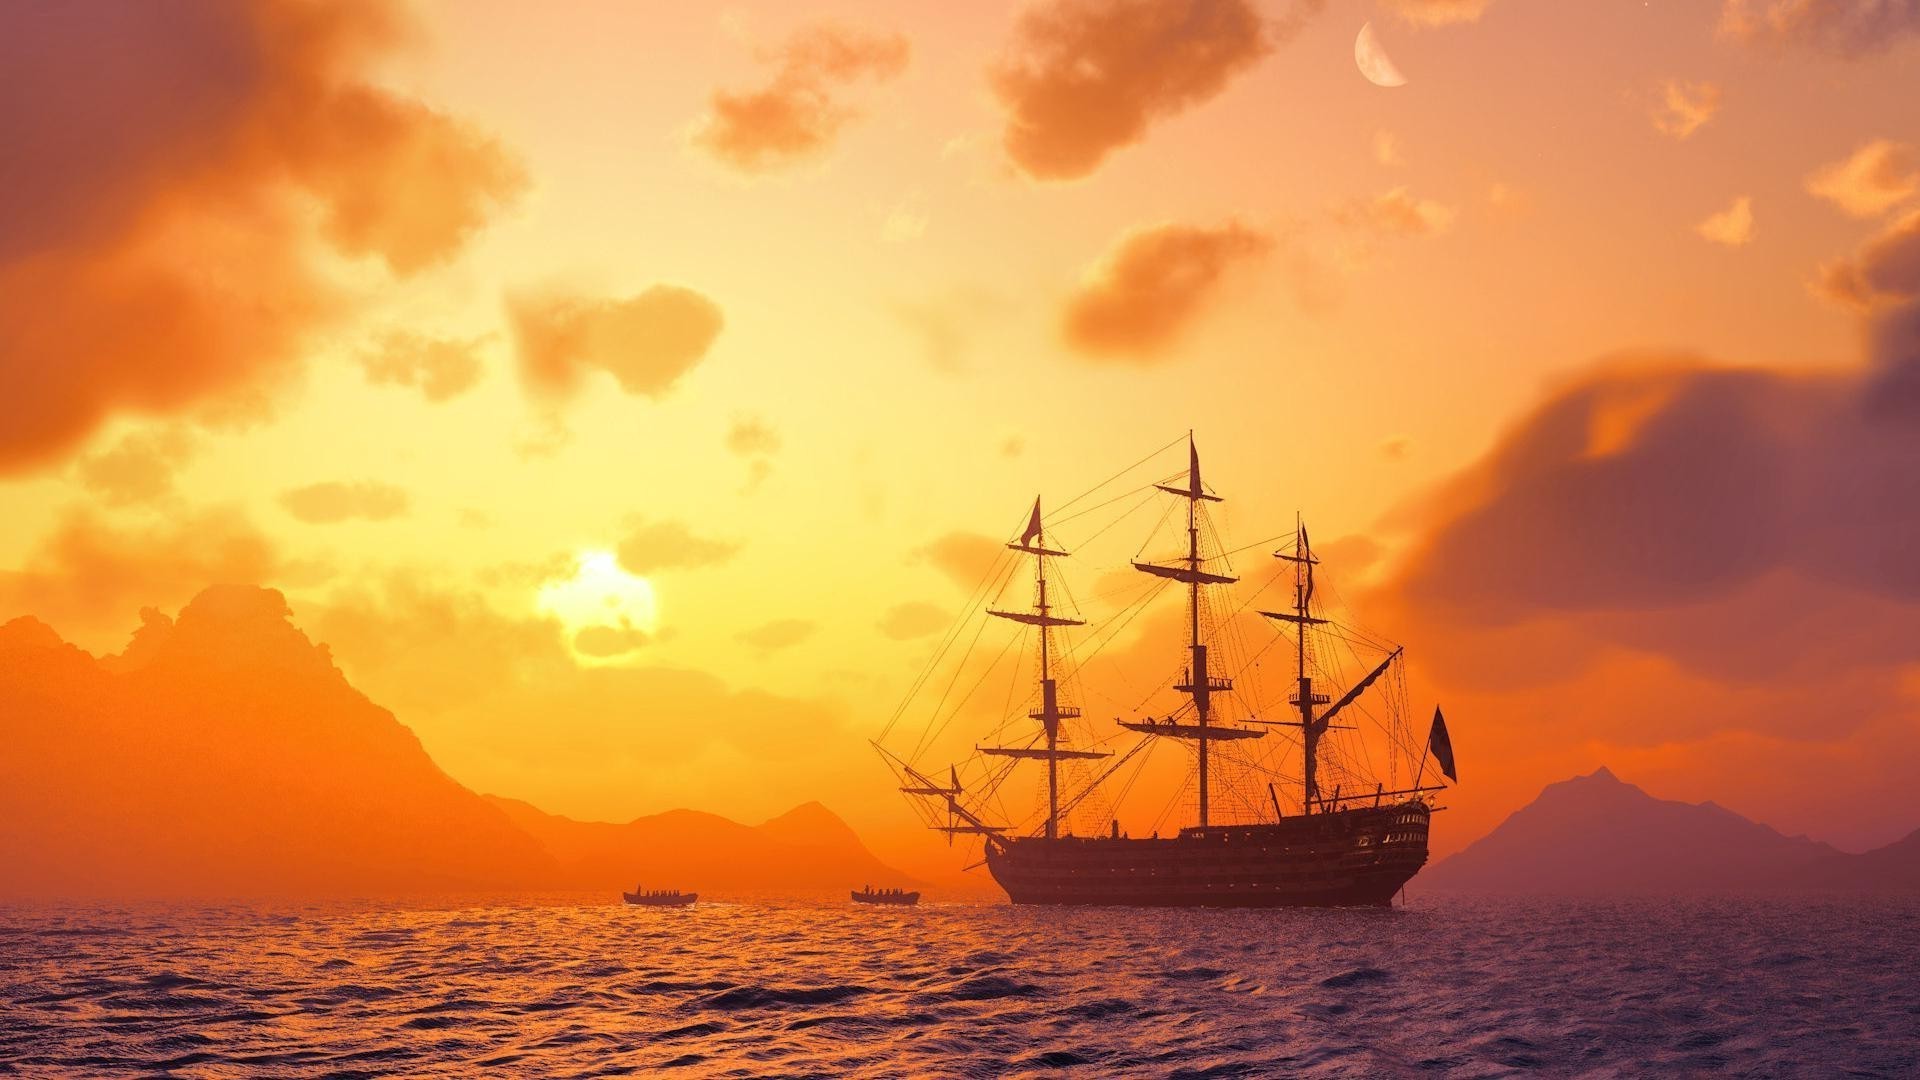 Ship at sunset in the ocean